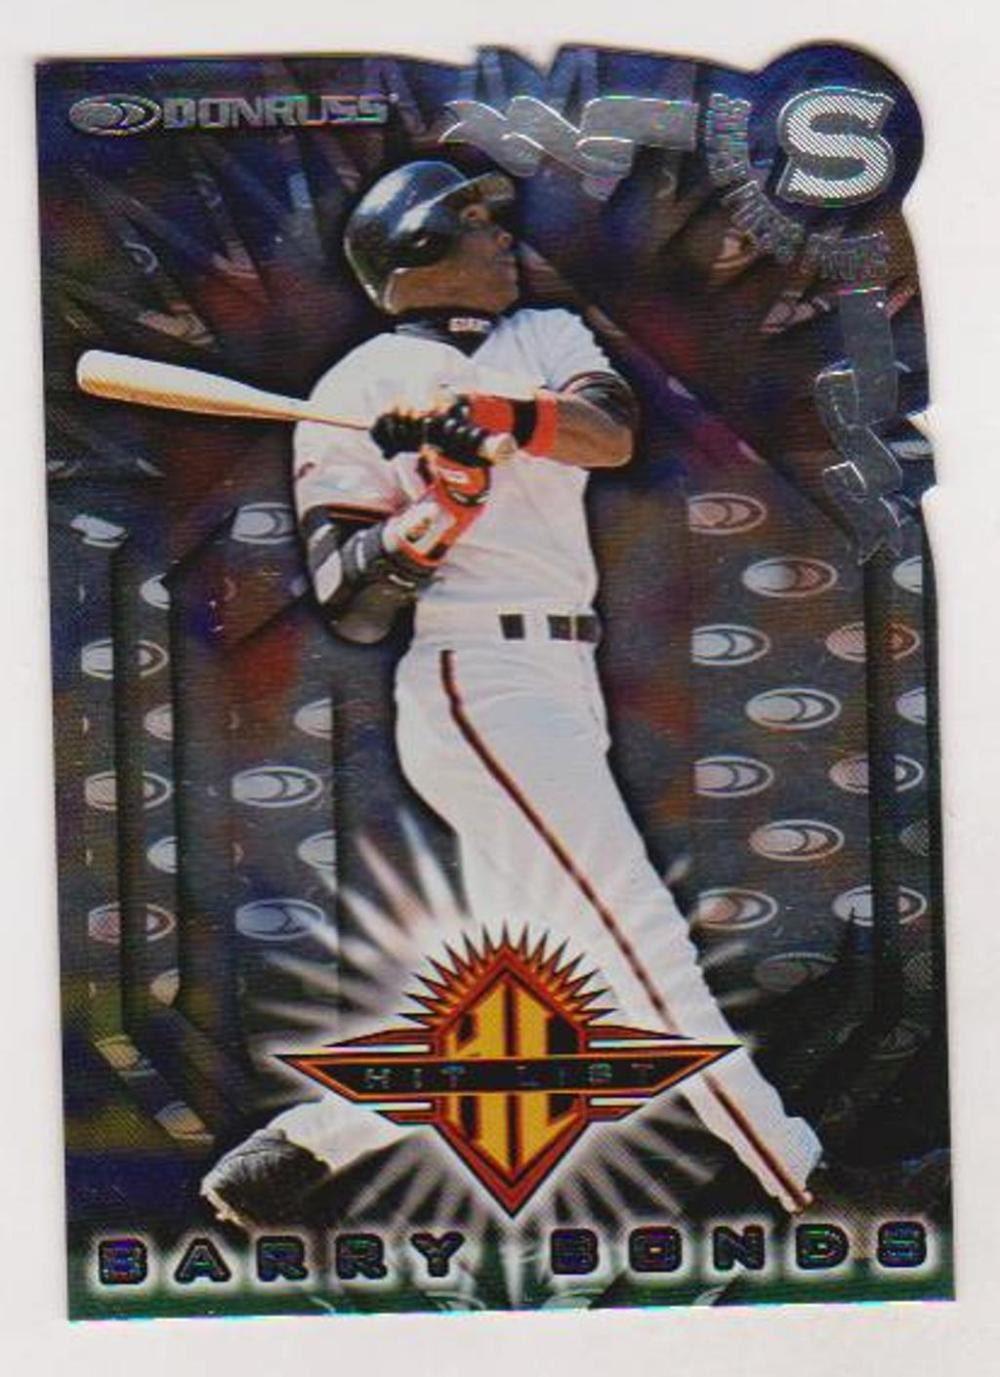 1998 Donruss Silver Press Proof Barry Bonds #347 Insert Card (1 of 1500)